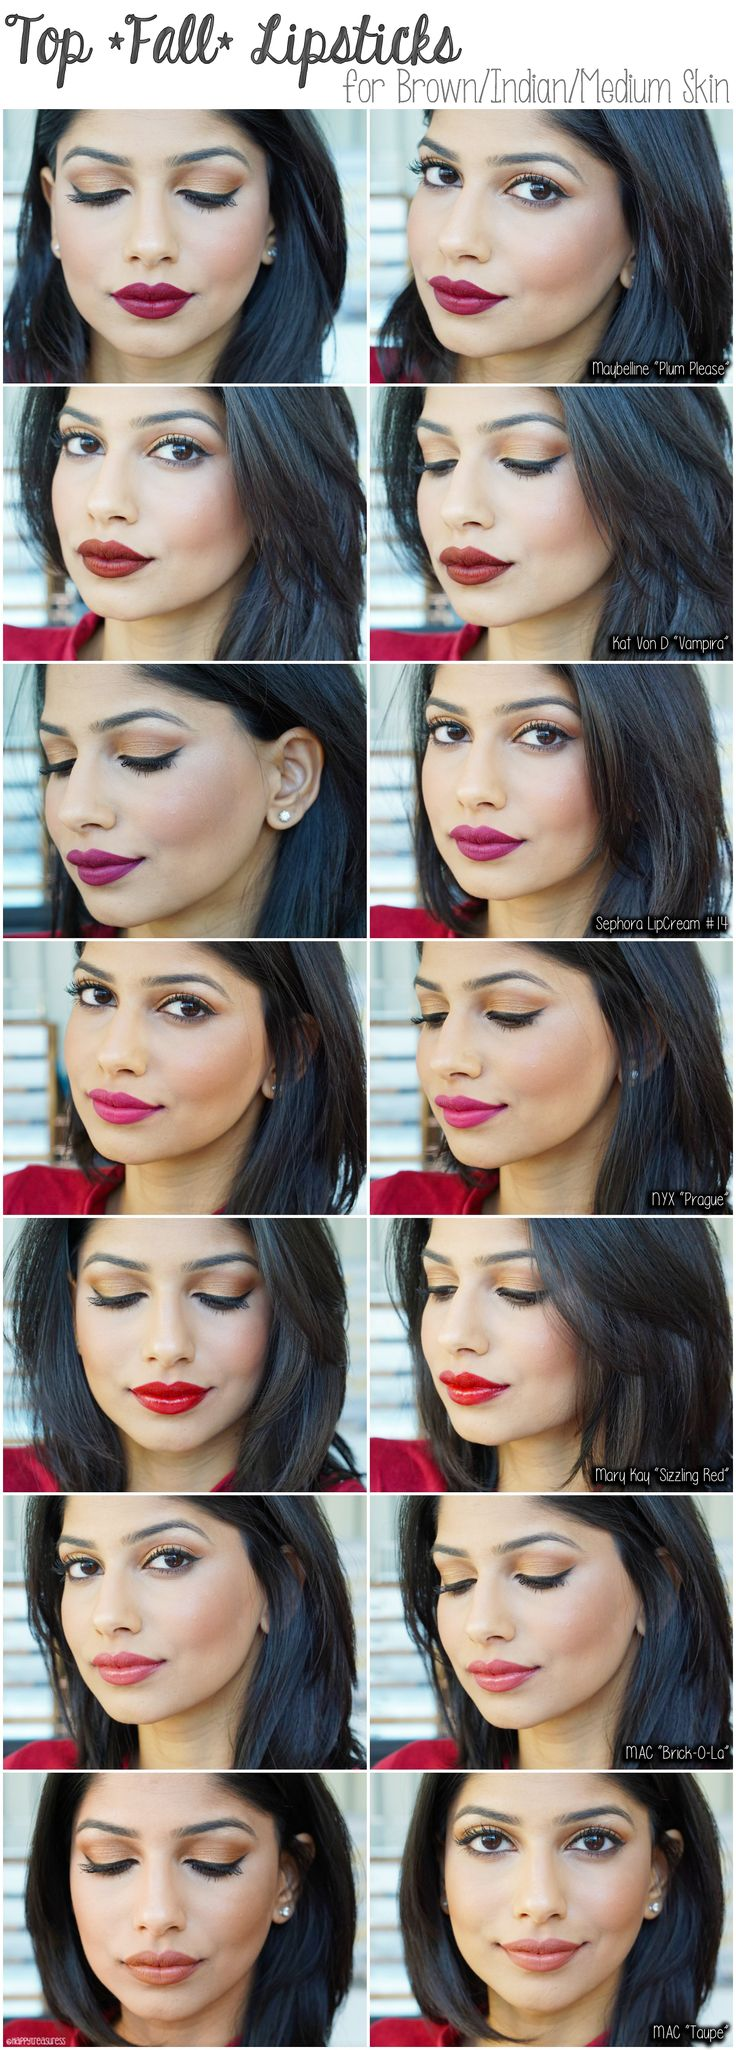 Best Top Mac Lipsticks Ideas On Pinterest Brown Mac Lipstick - Best mac lipsticks shades for all type of skin tone